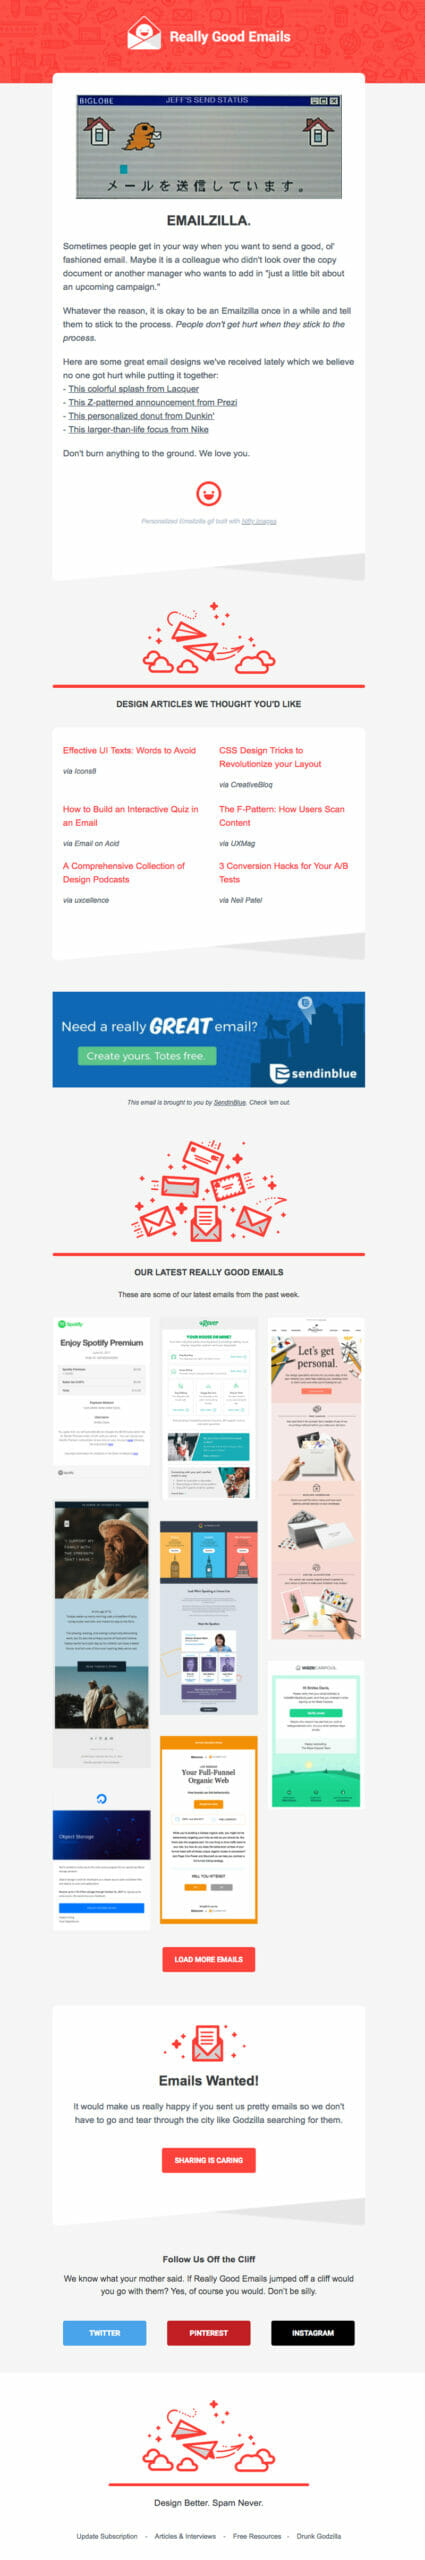 Really Good Emails is a Newsletter Example For Email Design Blogs